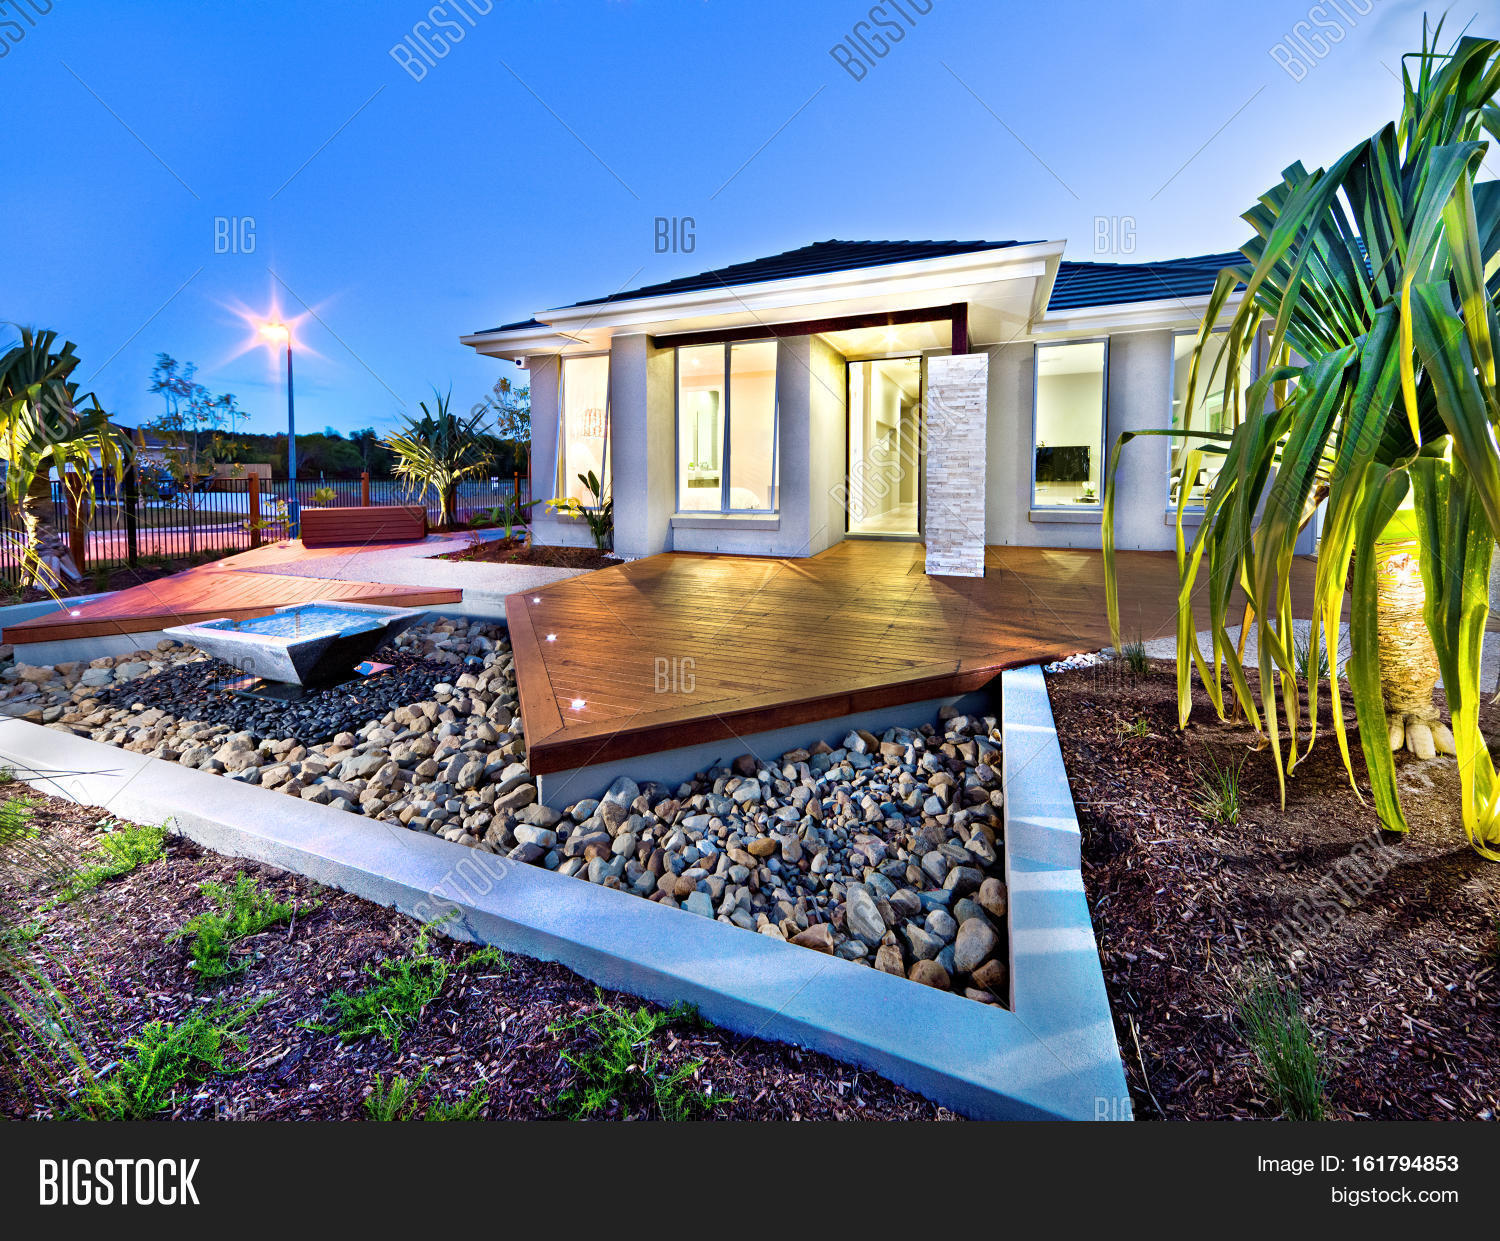 Modern mansion at night with lights on over the gravel garden with a pond near